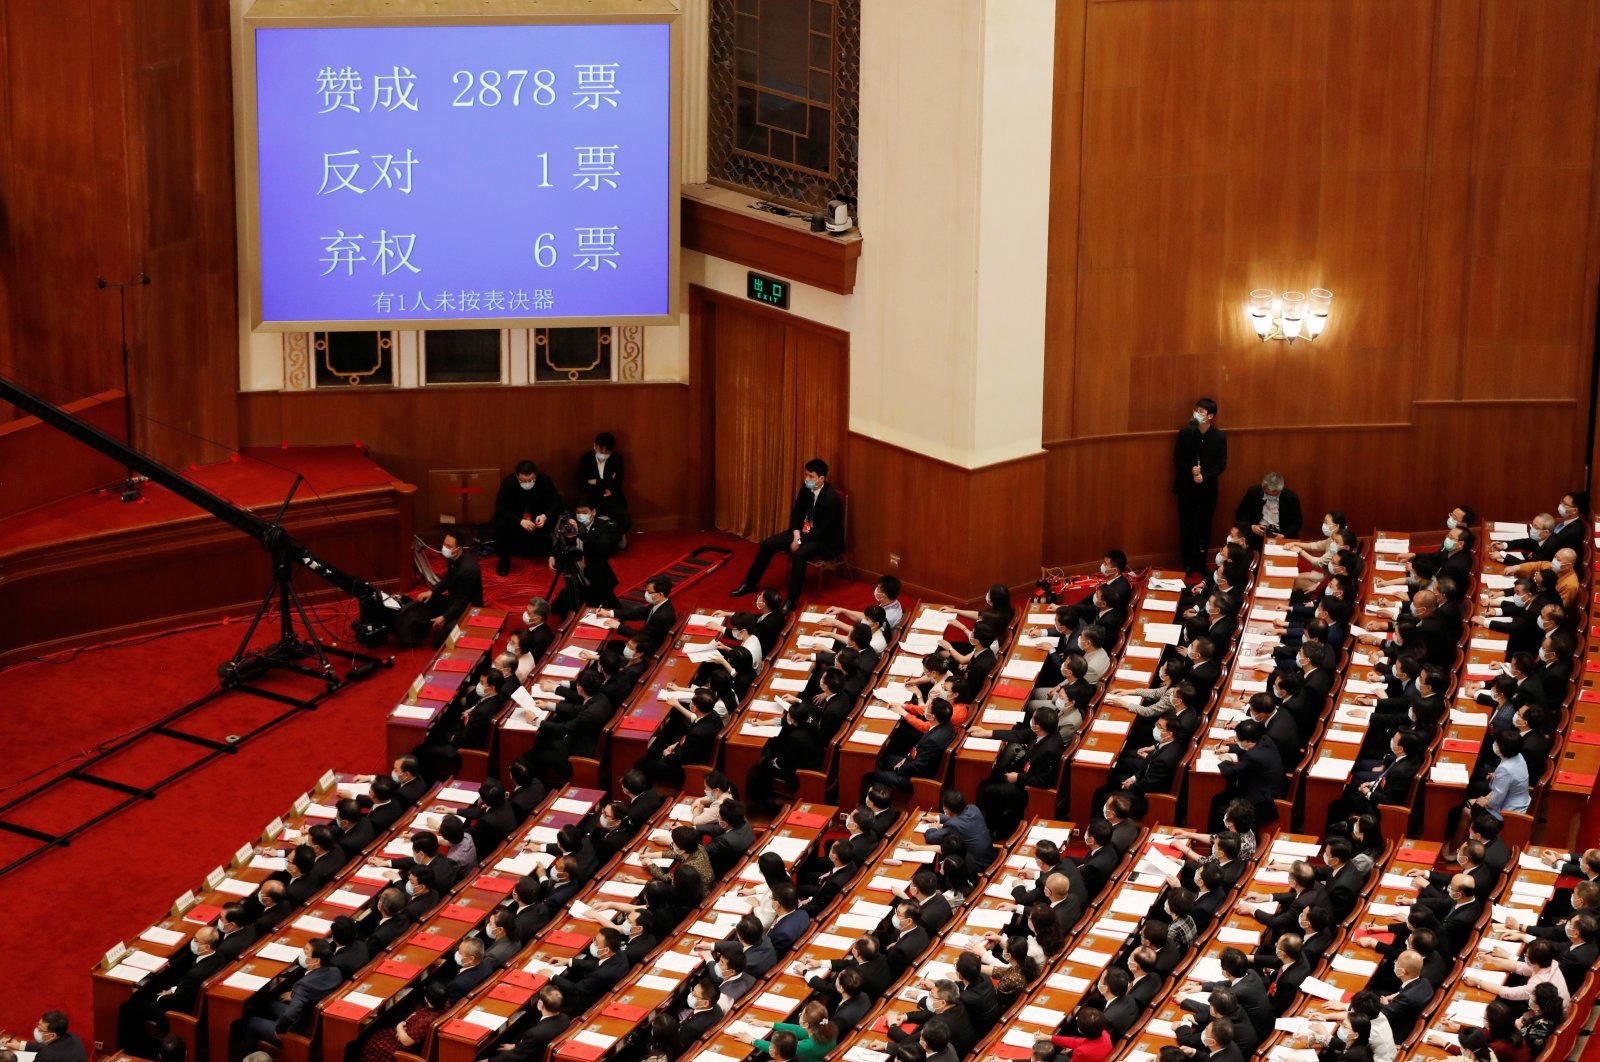 A screen shows the results of the vote on the national security legislation for the Hong Kong Special Administrative Region at the closing session of the National People's Congress (NPC) at the Great Hall of the People in Beijing, May 28, 2020. (Reuters Photo)